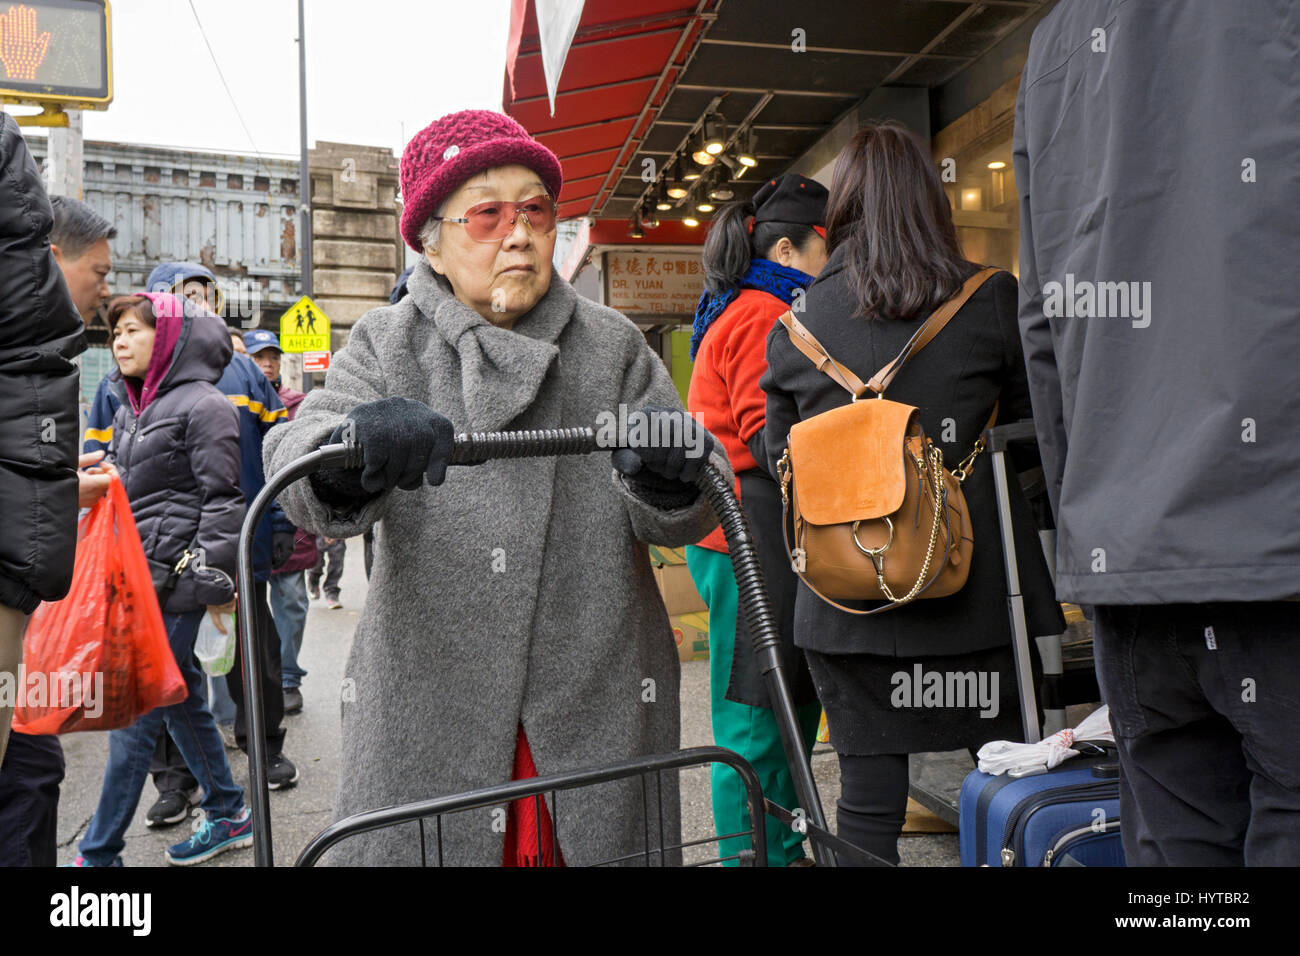 An older Chinese American woman outside shopping on a cold day on Main Street in Chinatown, Flushing, Queens, New - Stock Image